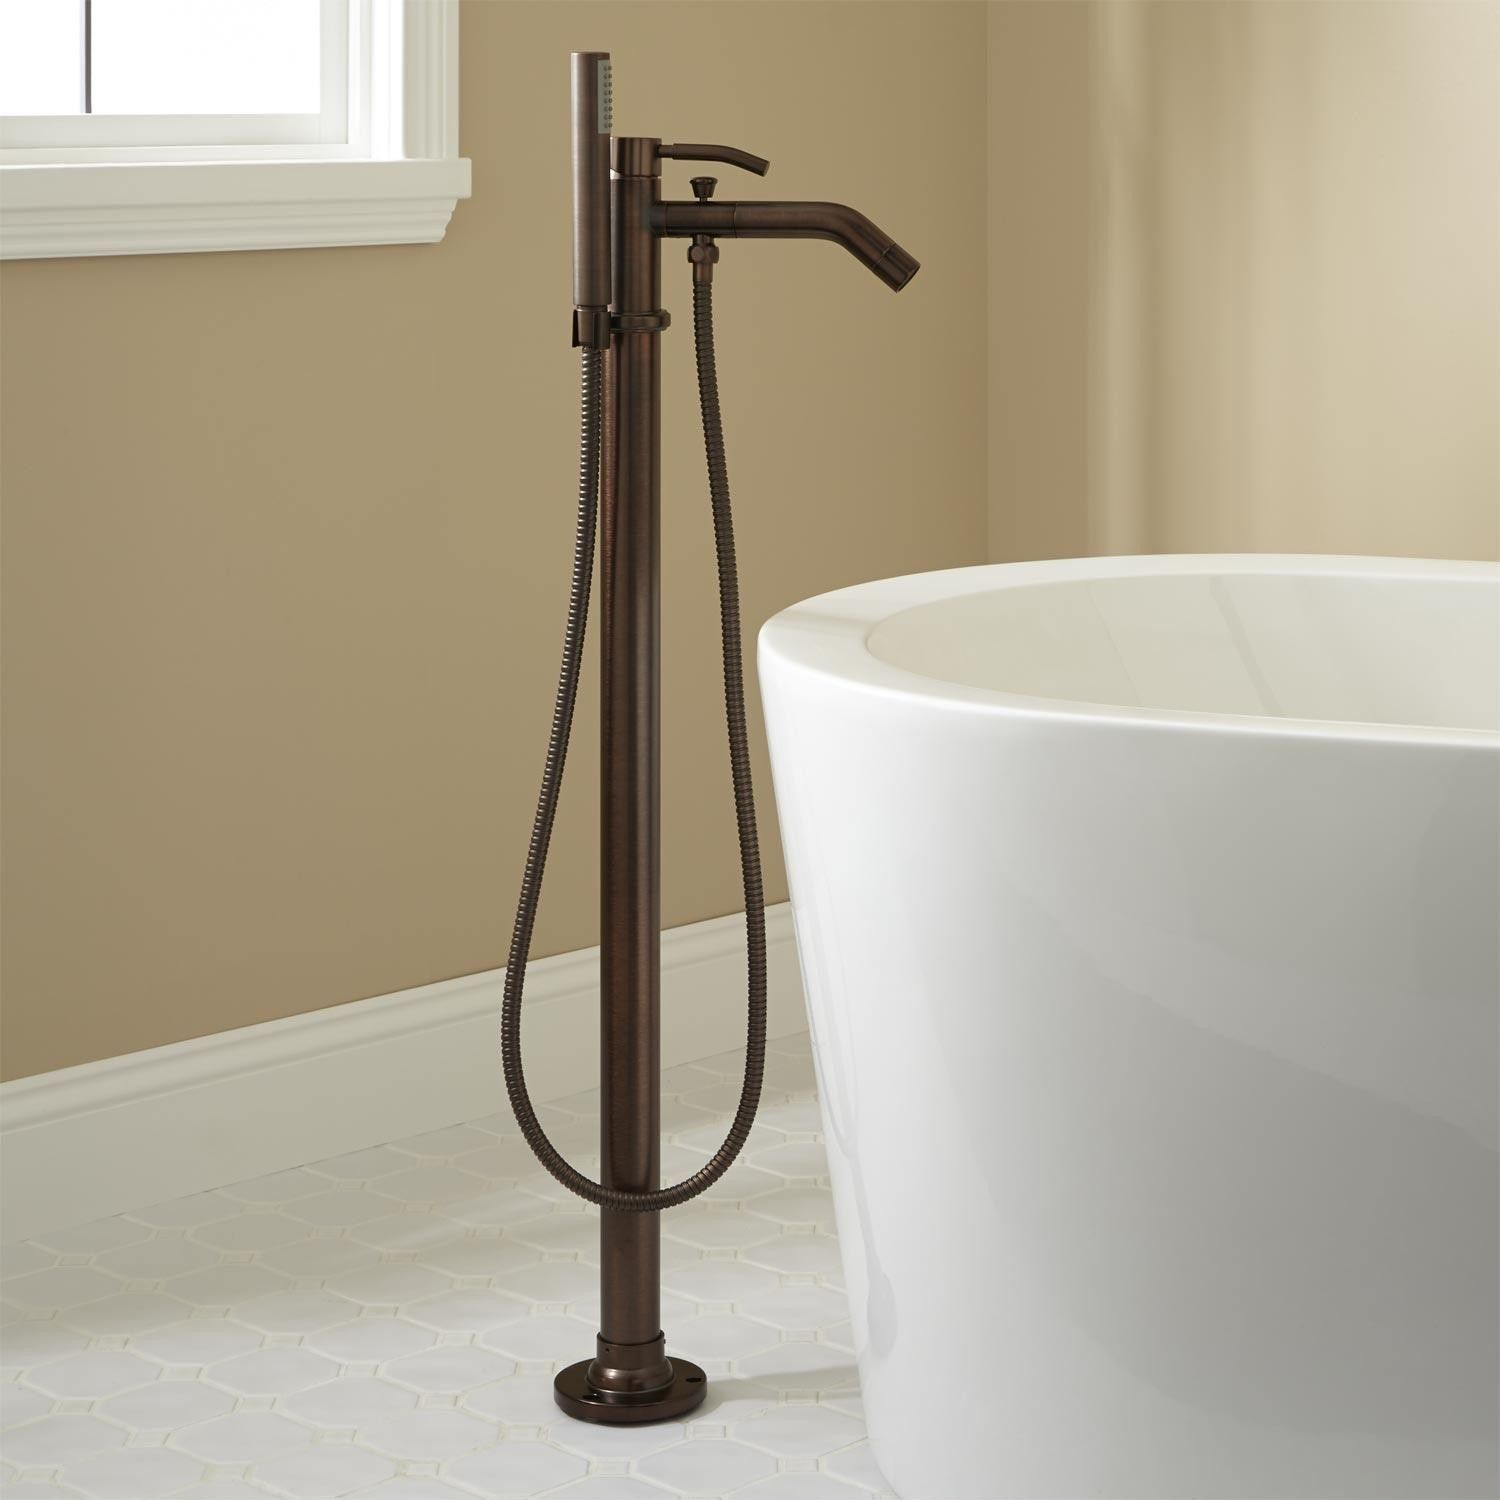 Caol Freestanding Tub Faucet With Hand Shower Comes In Polished